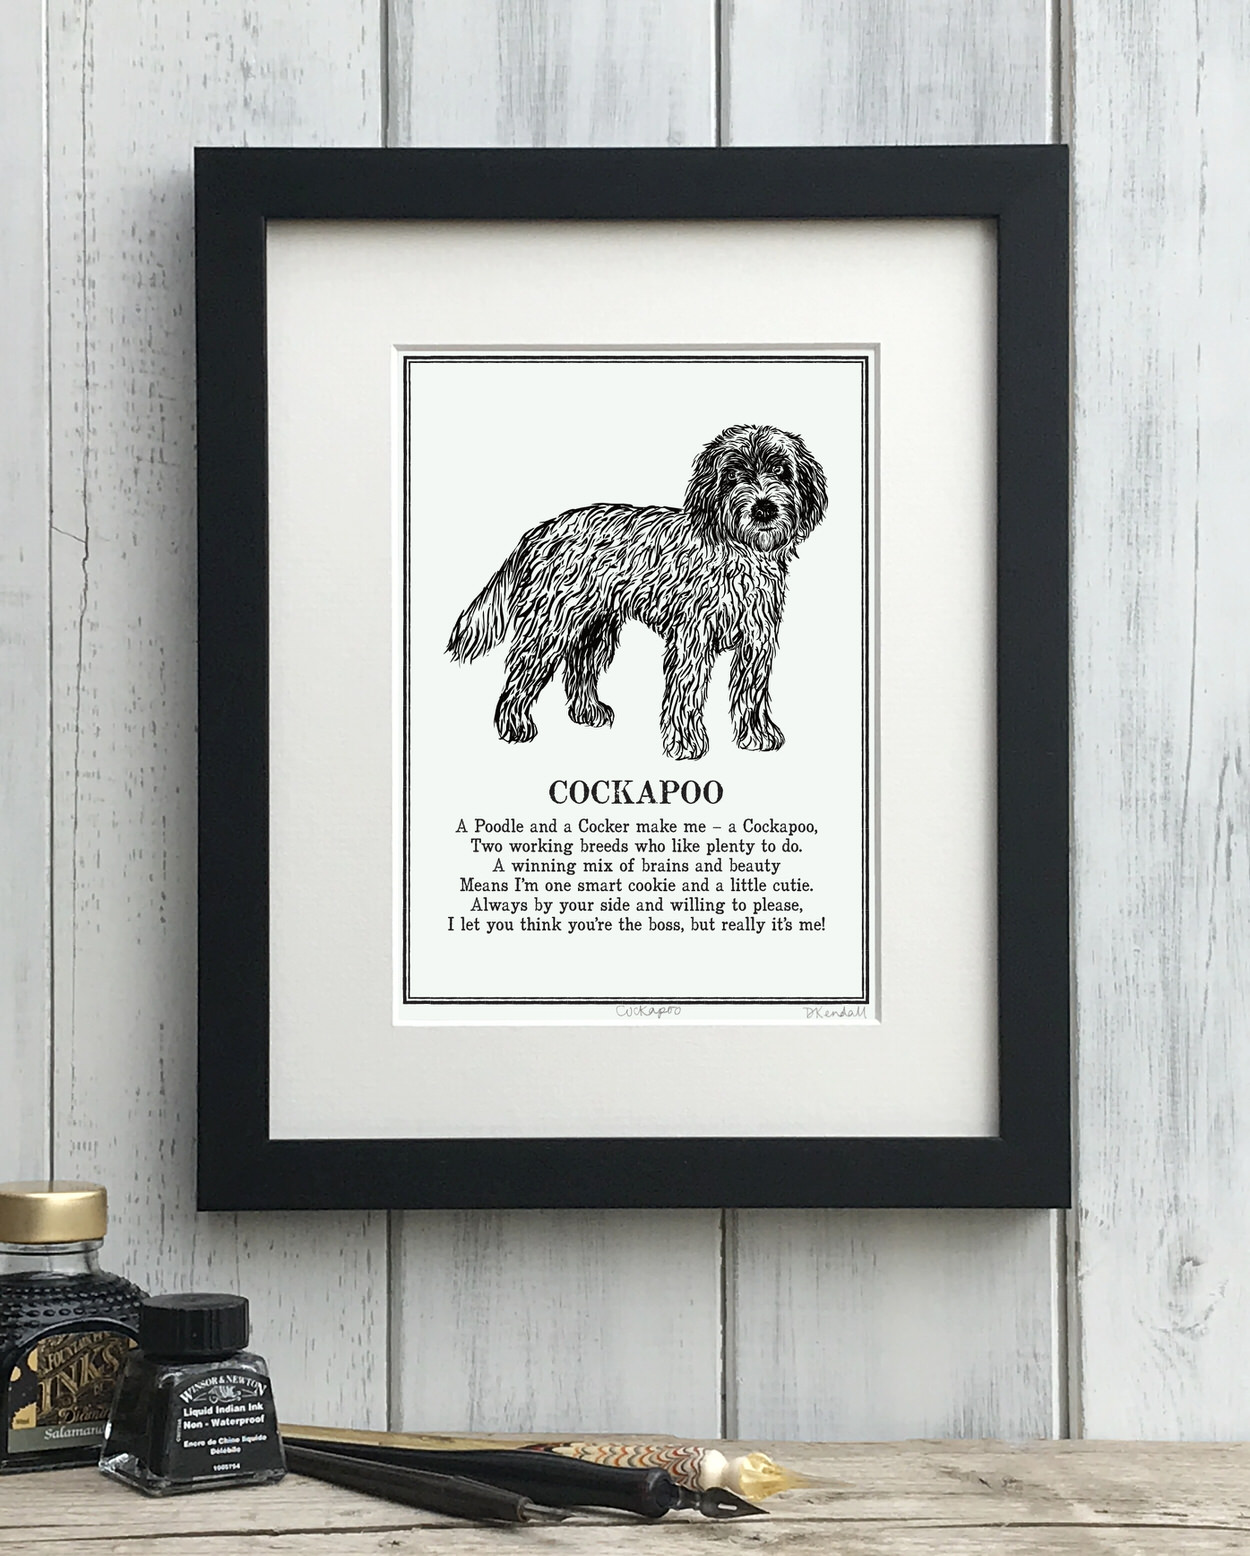 Cockapoo print illustrated poem by The Enlightened Hound